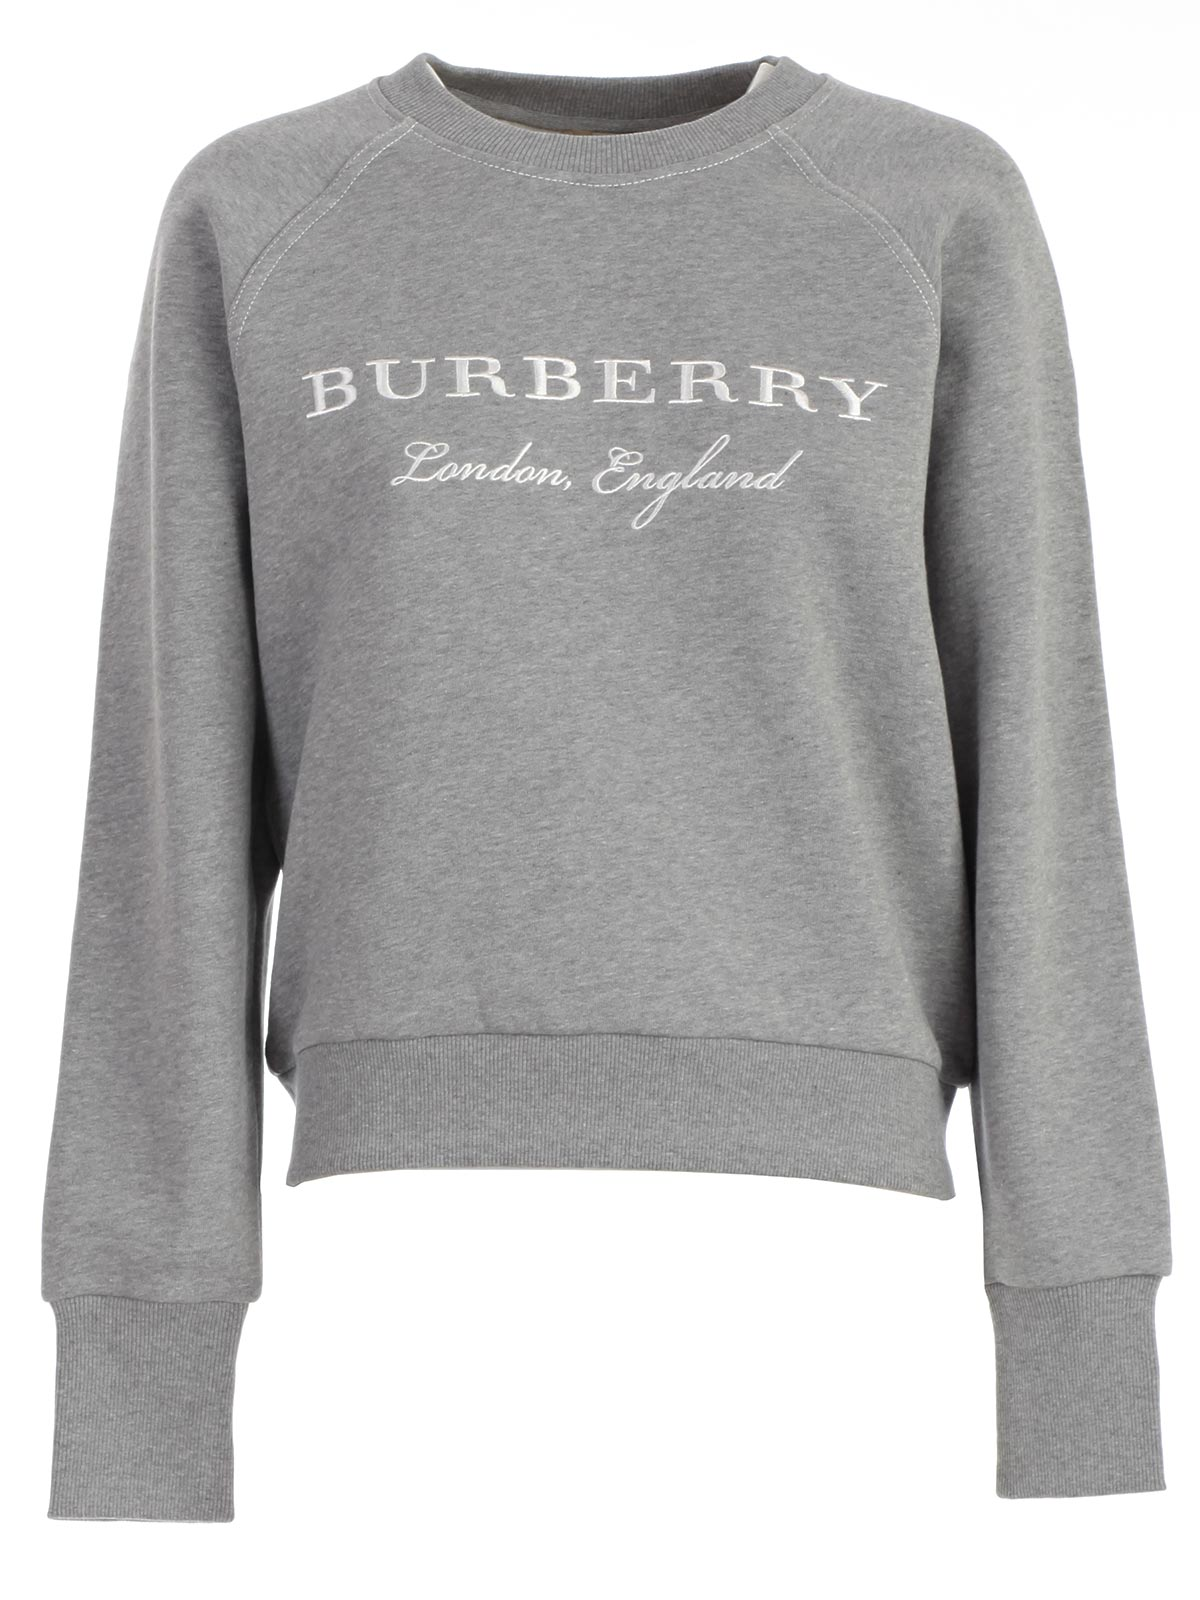 Burberry Sweatshirt 4056172 05000 Pale Grey Melange